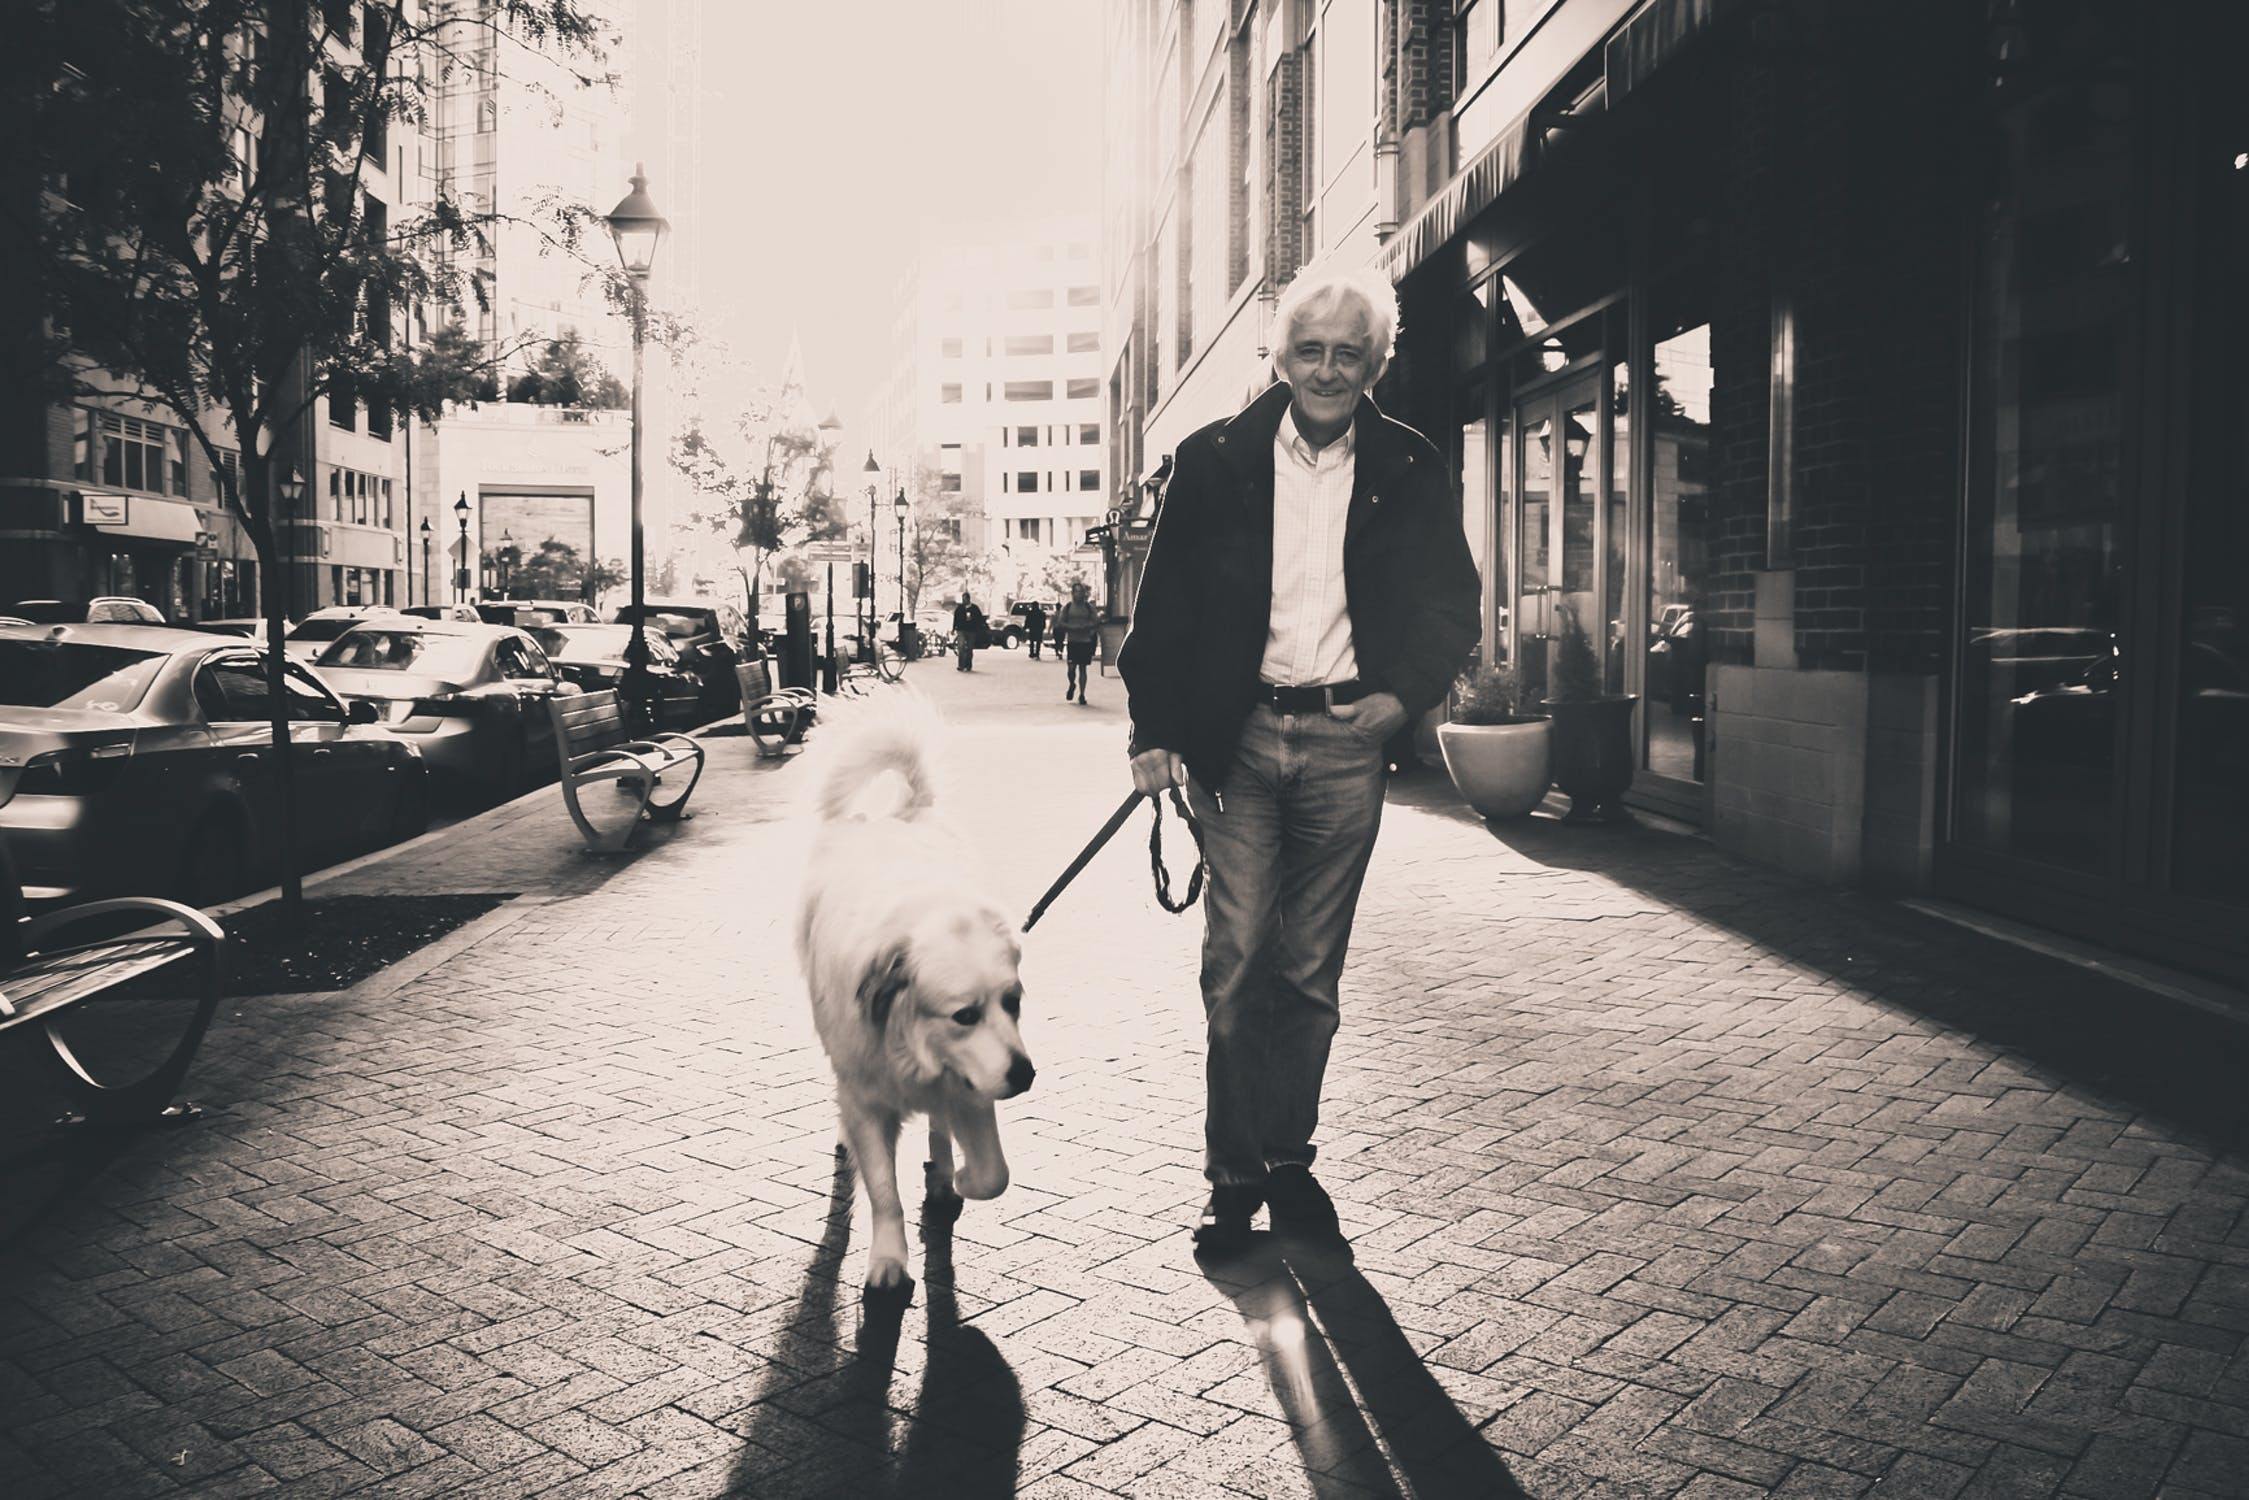 A man walking his dog as he learns about the city after leaving Japan with family.